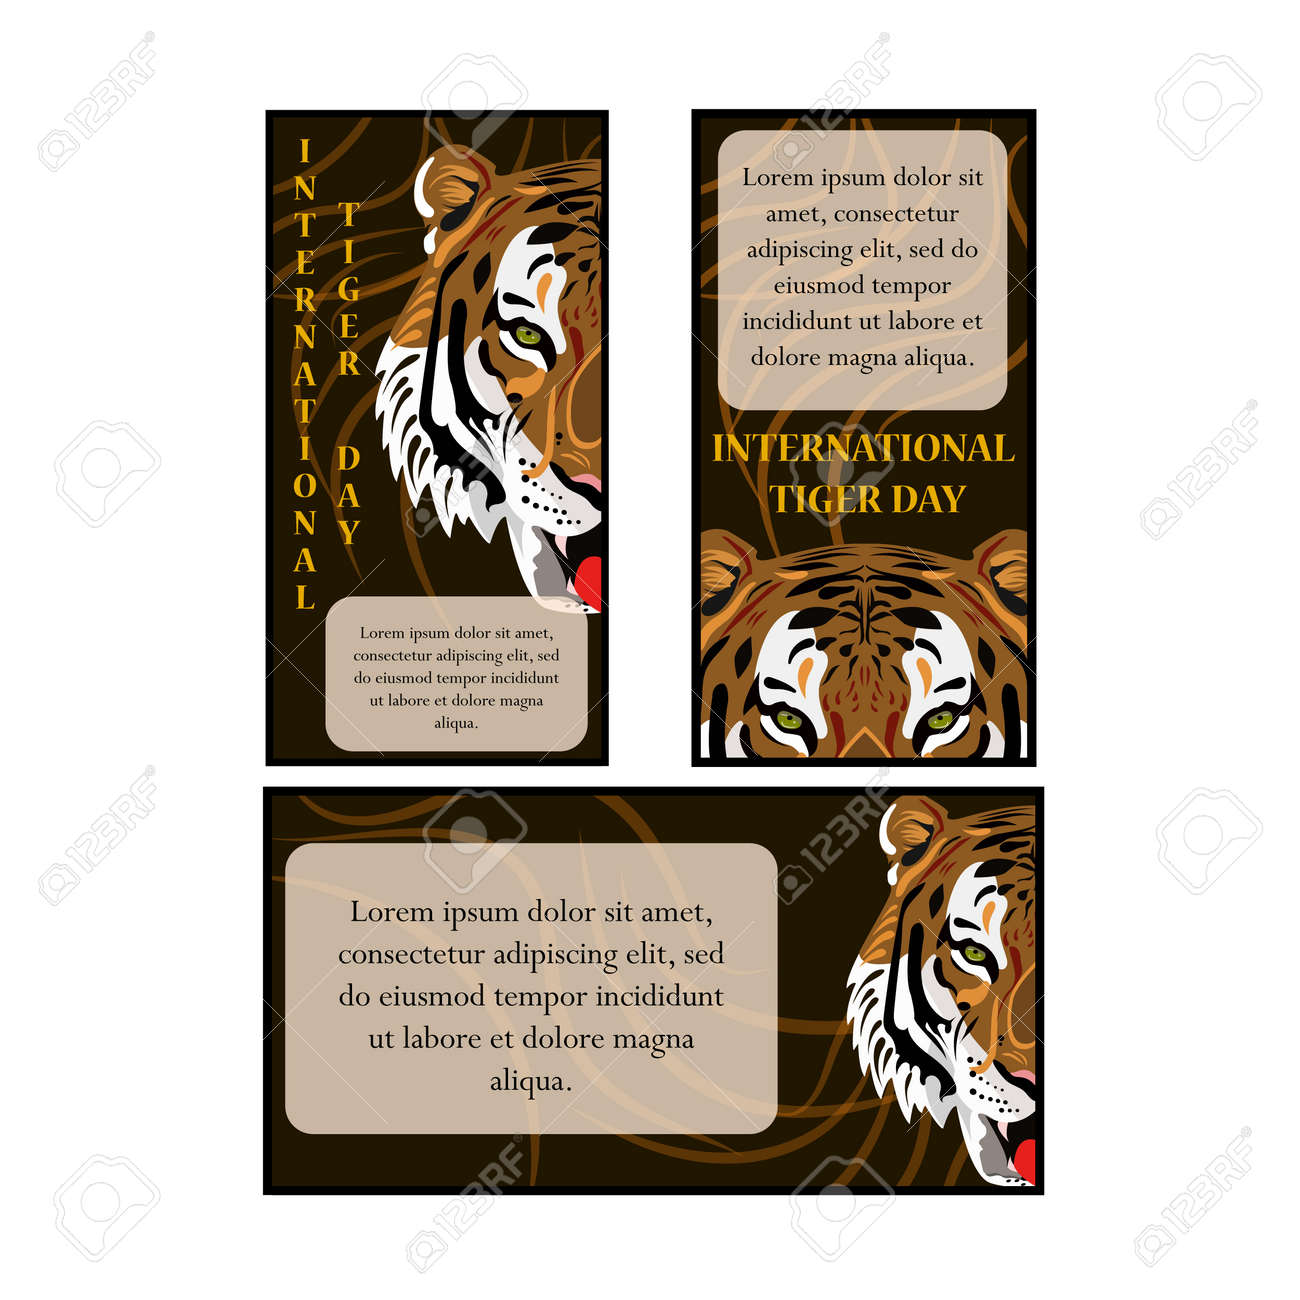 Concept on an international tiger day featuring a tiger's head, vector illustration - 103984848